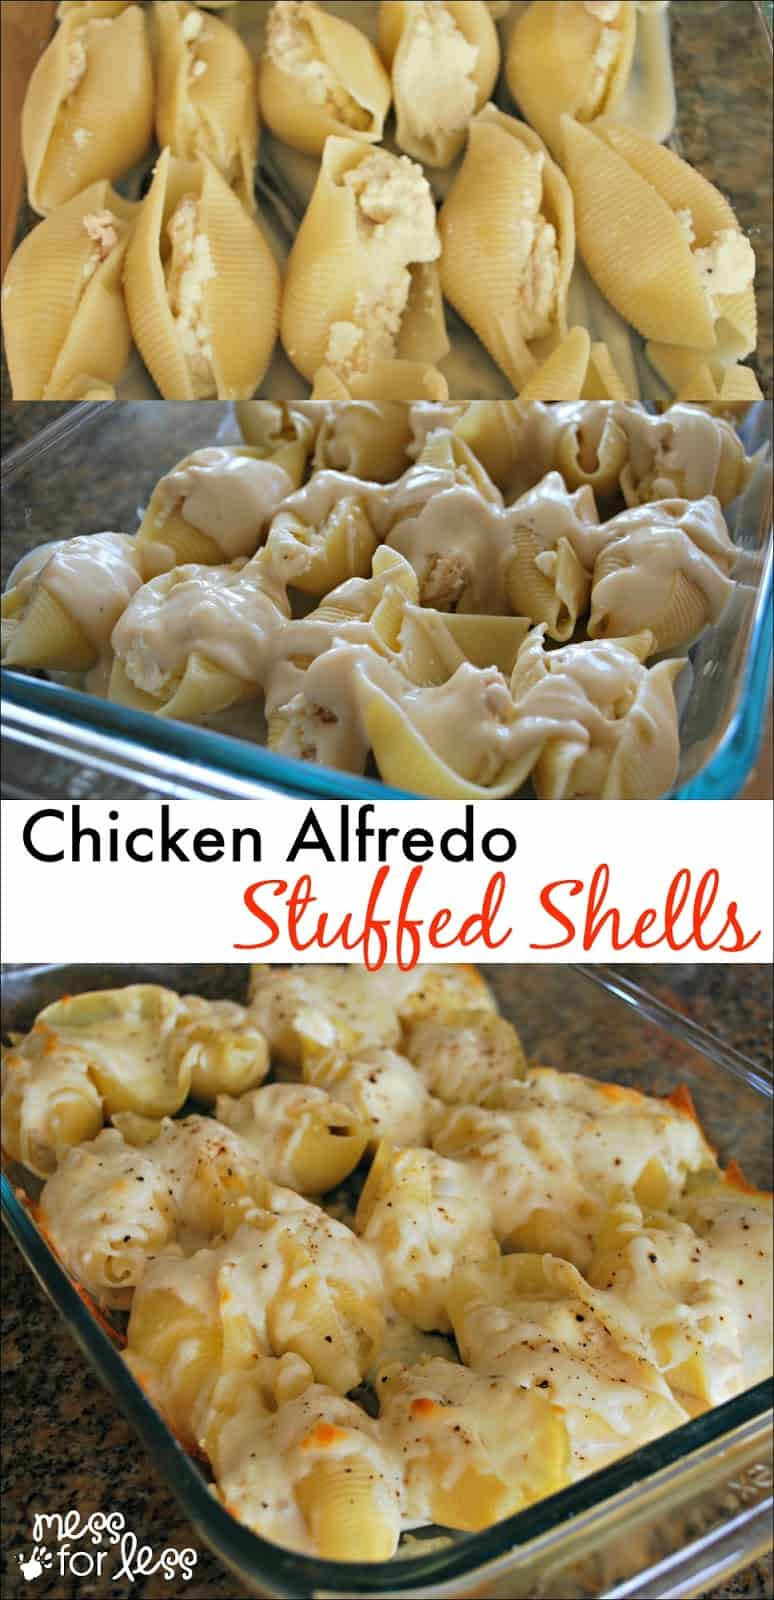 Chicken alfredo stuffed shells mess for less chicken alfredo stuffed shells yummy twist on traditional stuffed shells recipe comfort food at forumfinder Choice Image